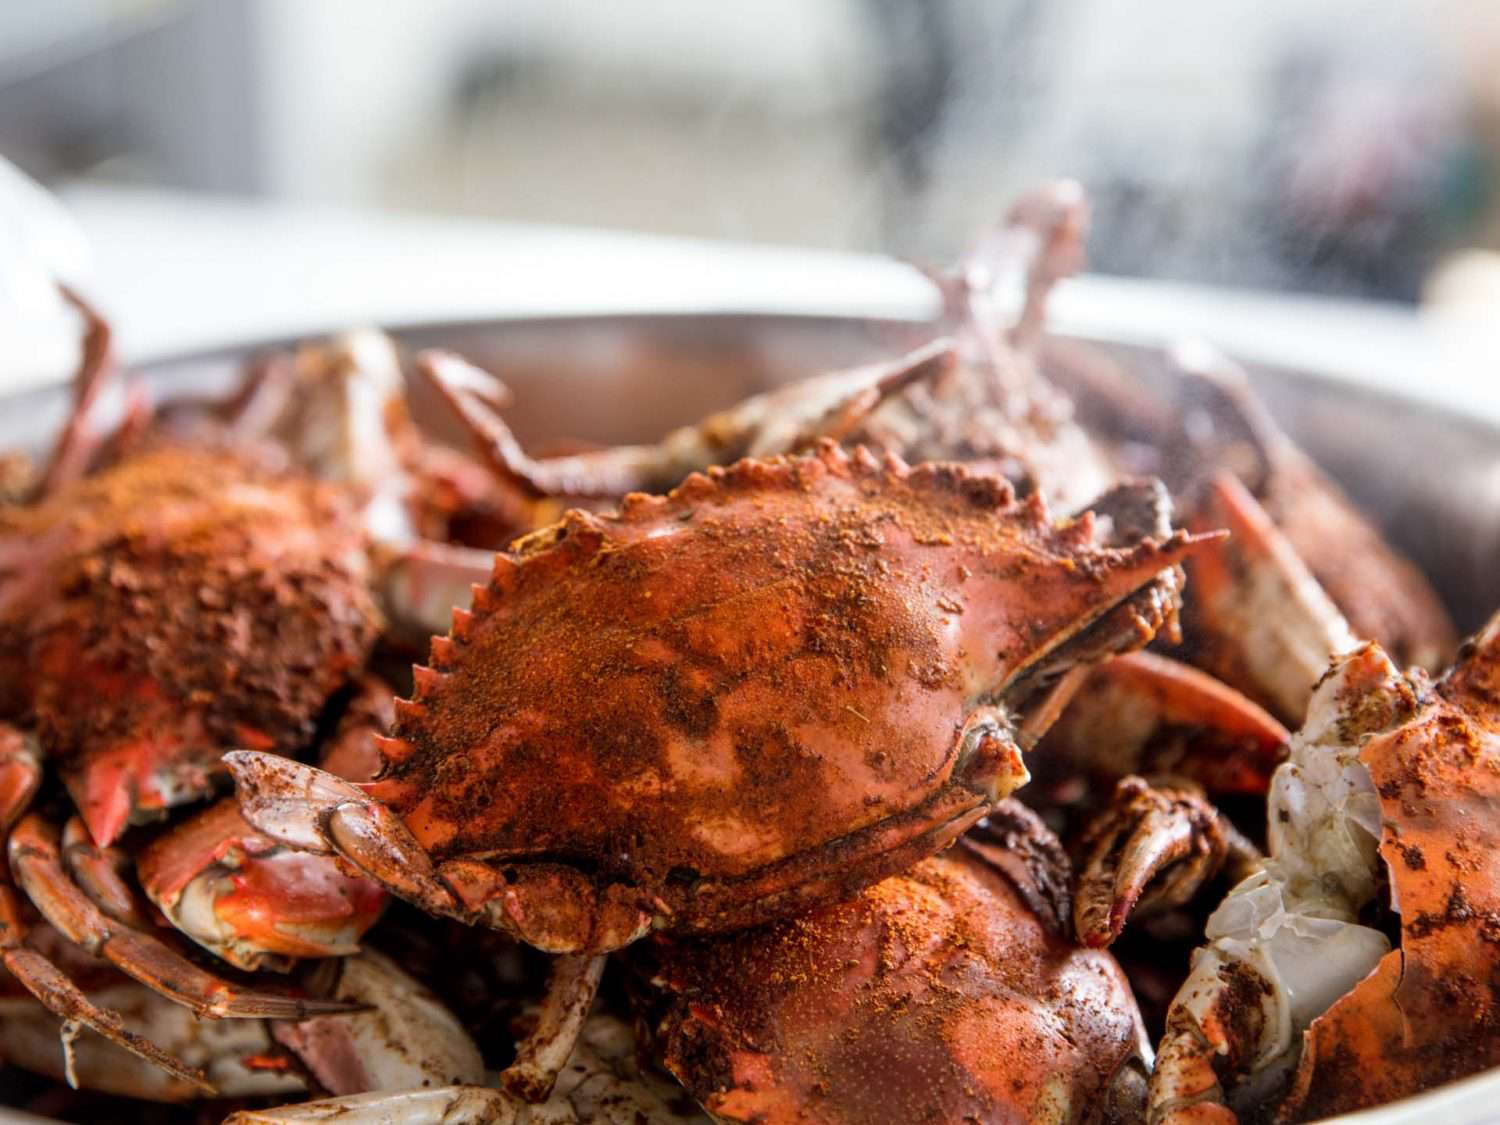 A pile of steamed crabs in a pot, coated in Old Bay